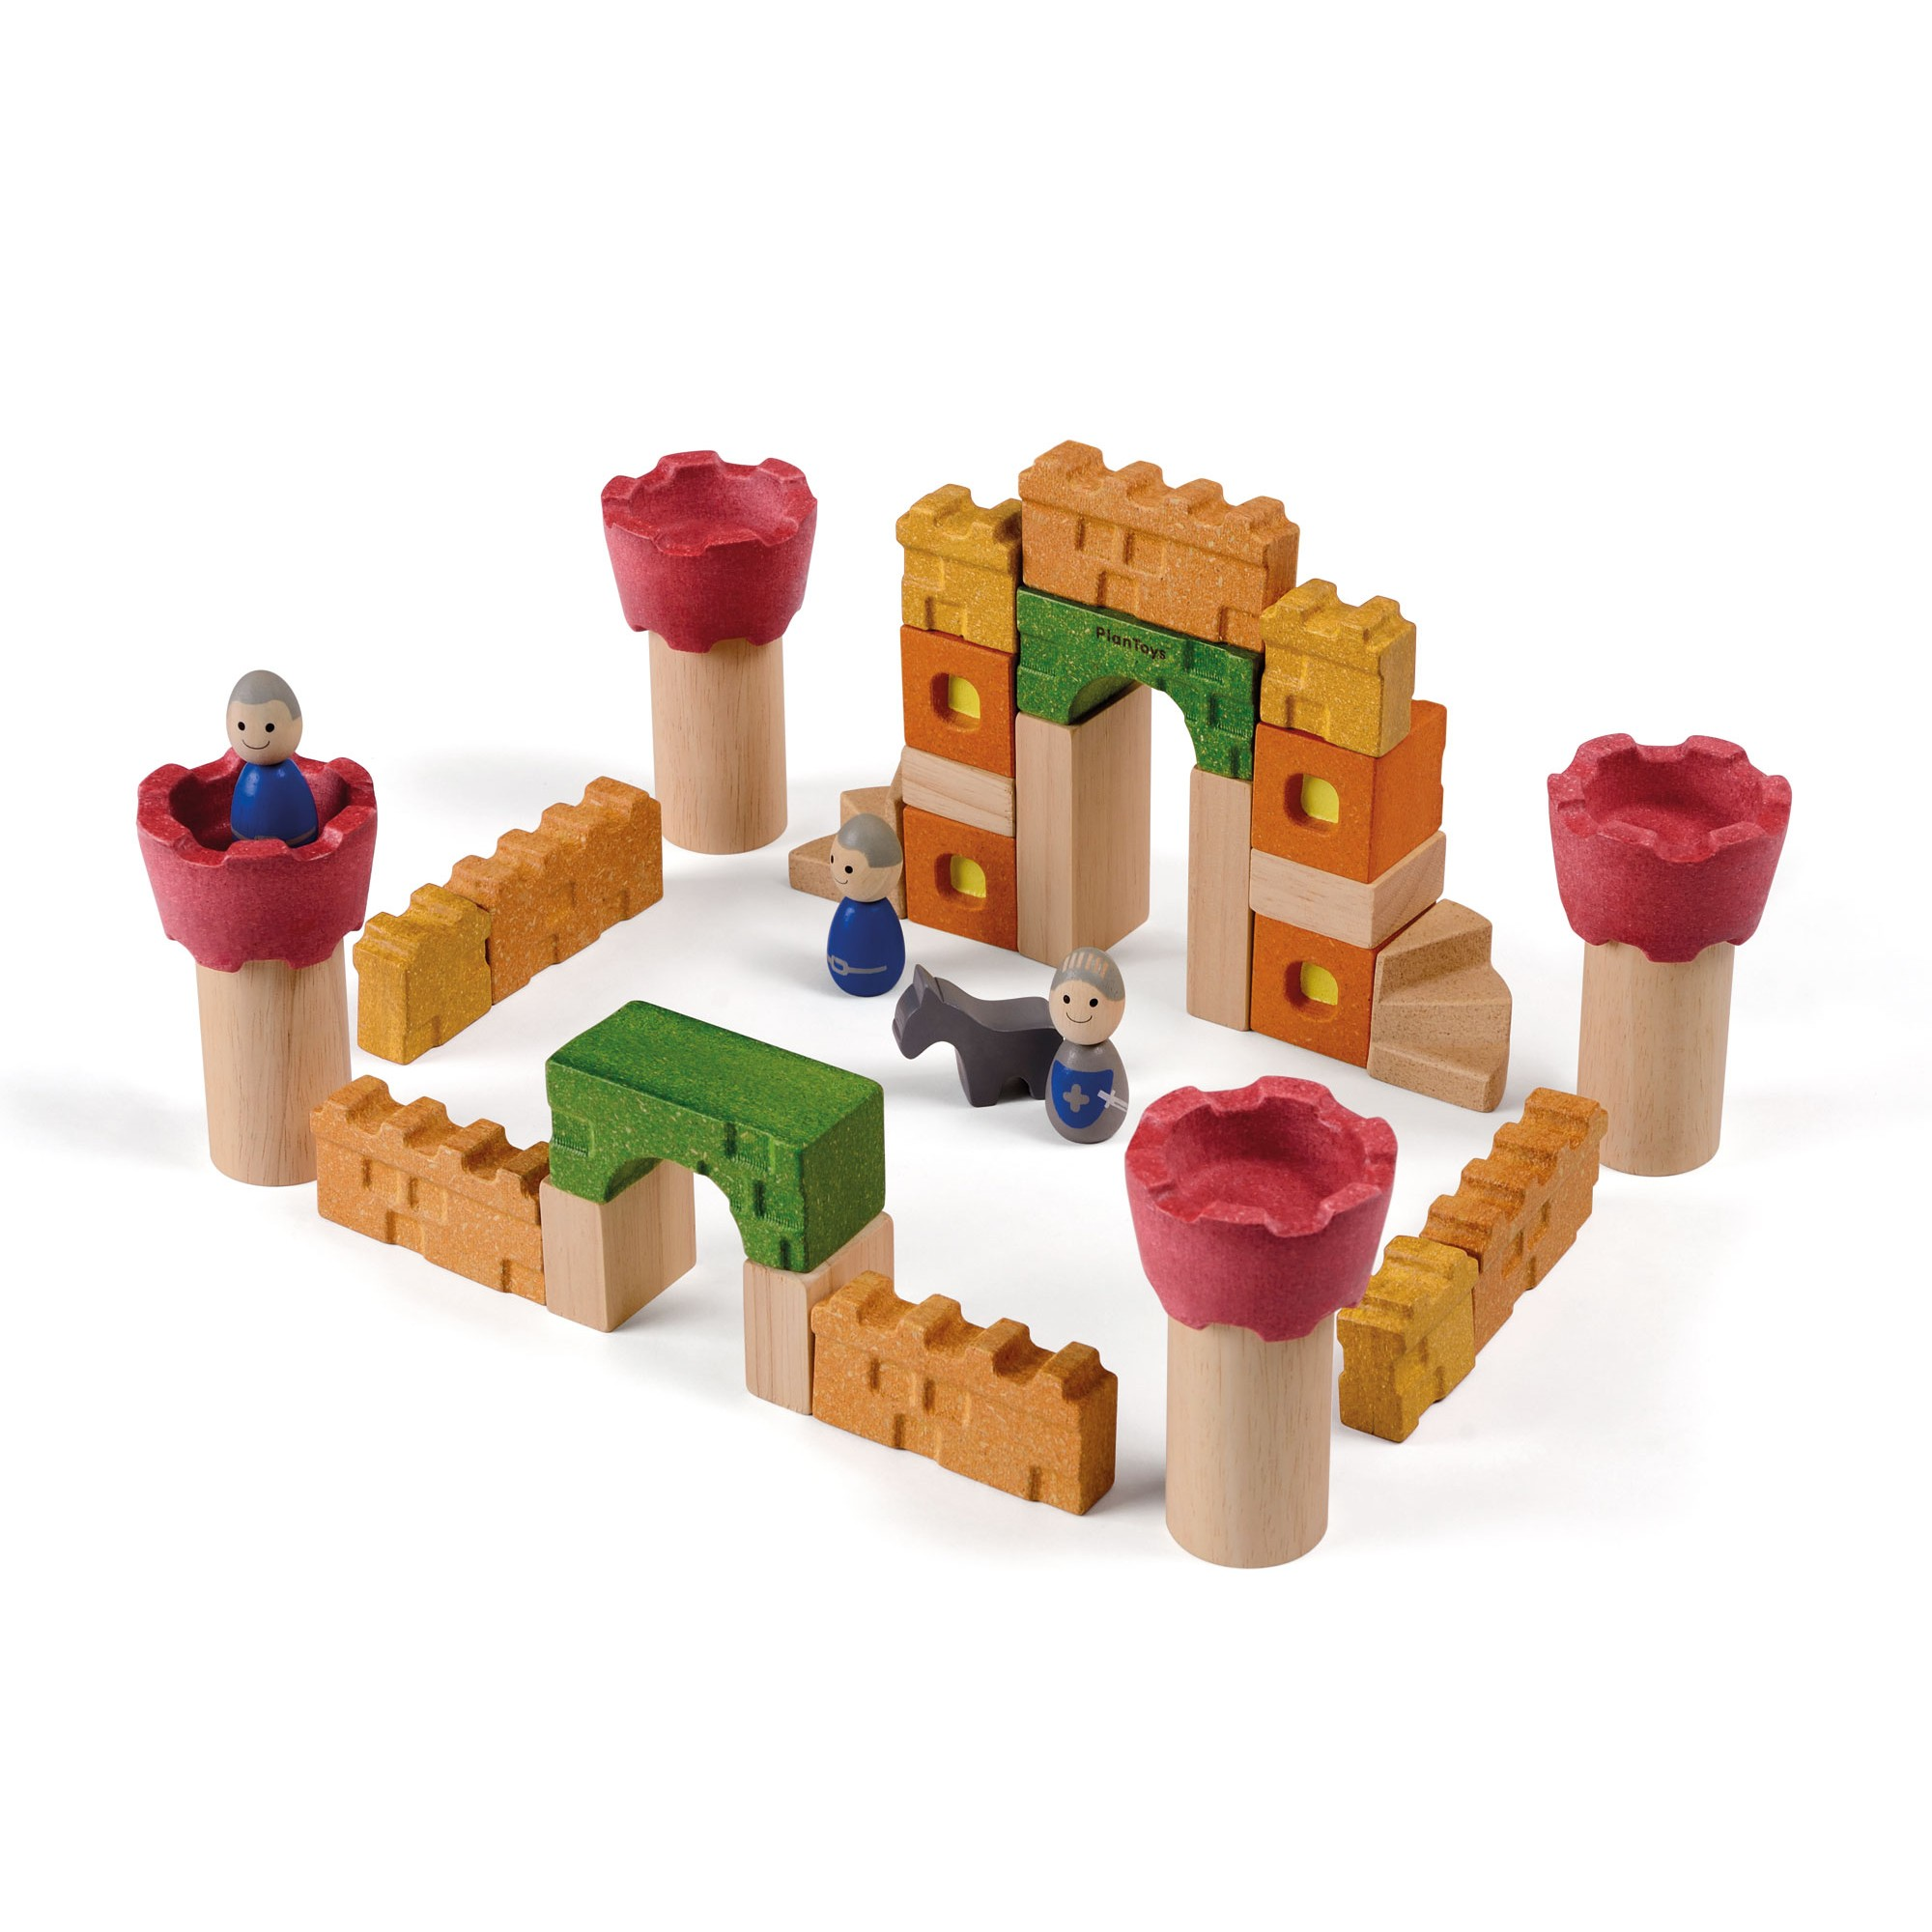 Wooden Toy Plans Catalog : Plan toys castle blocks